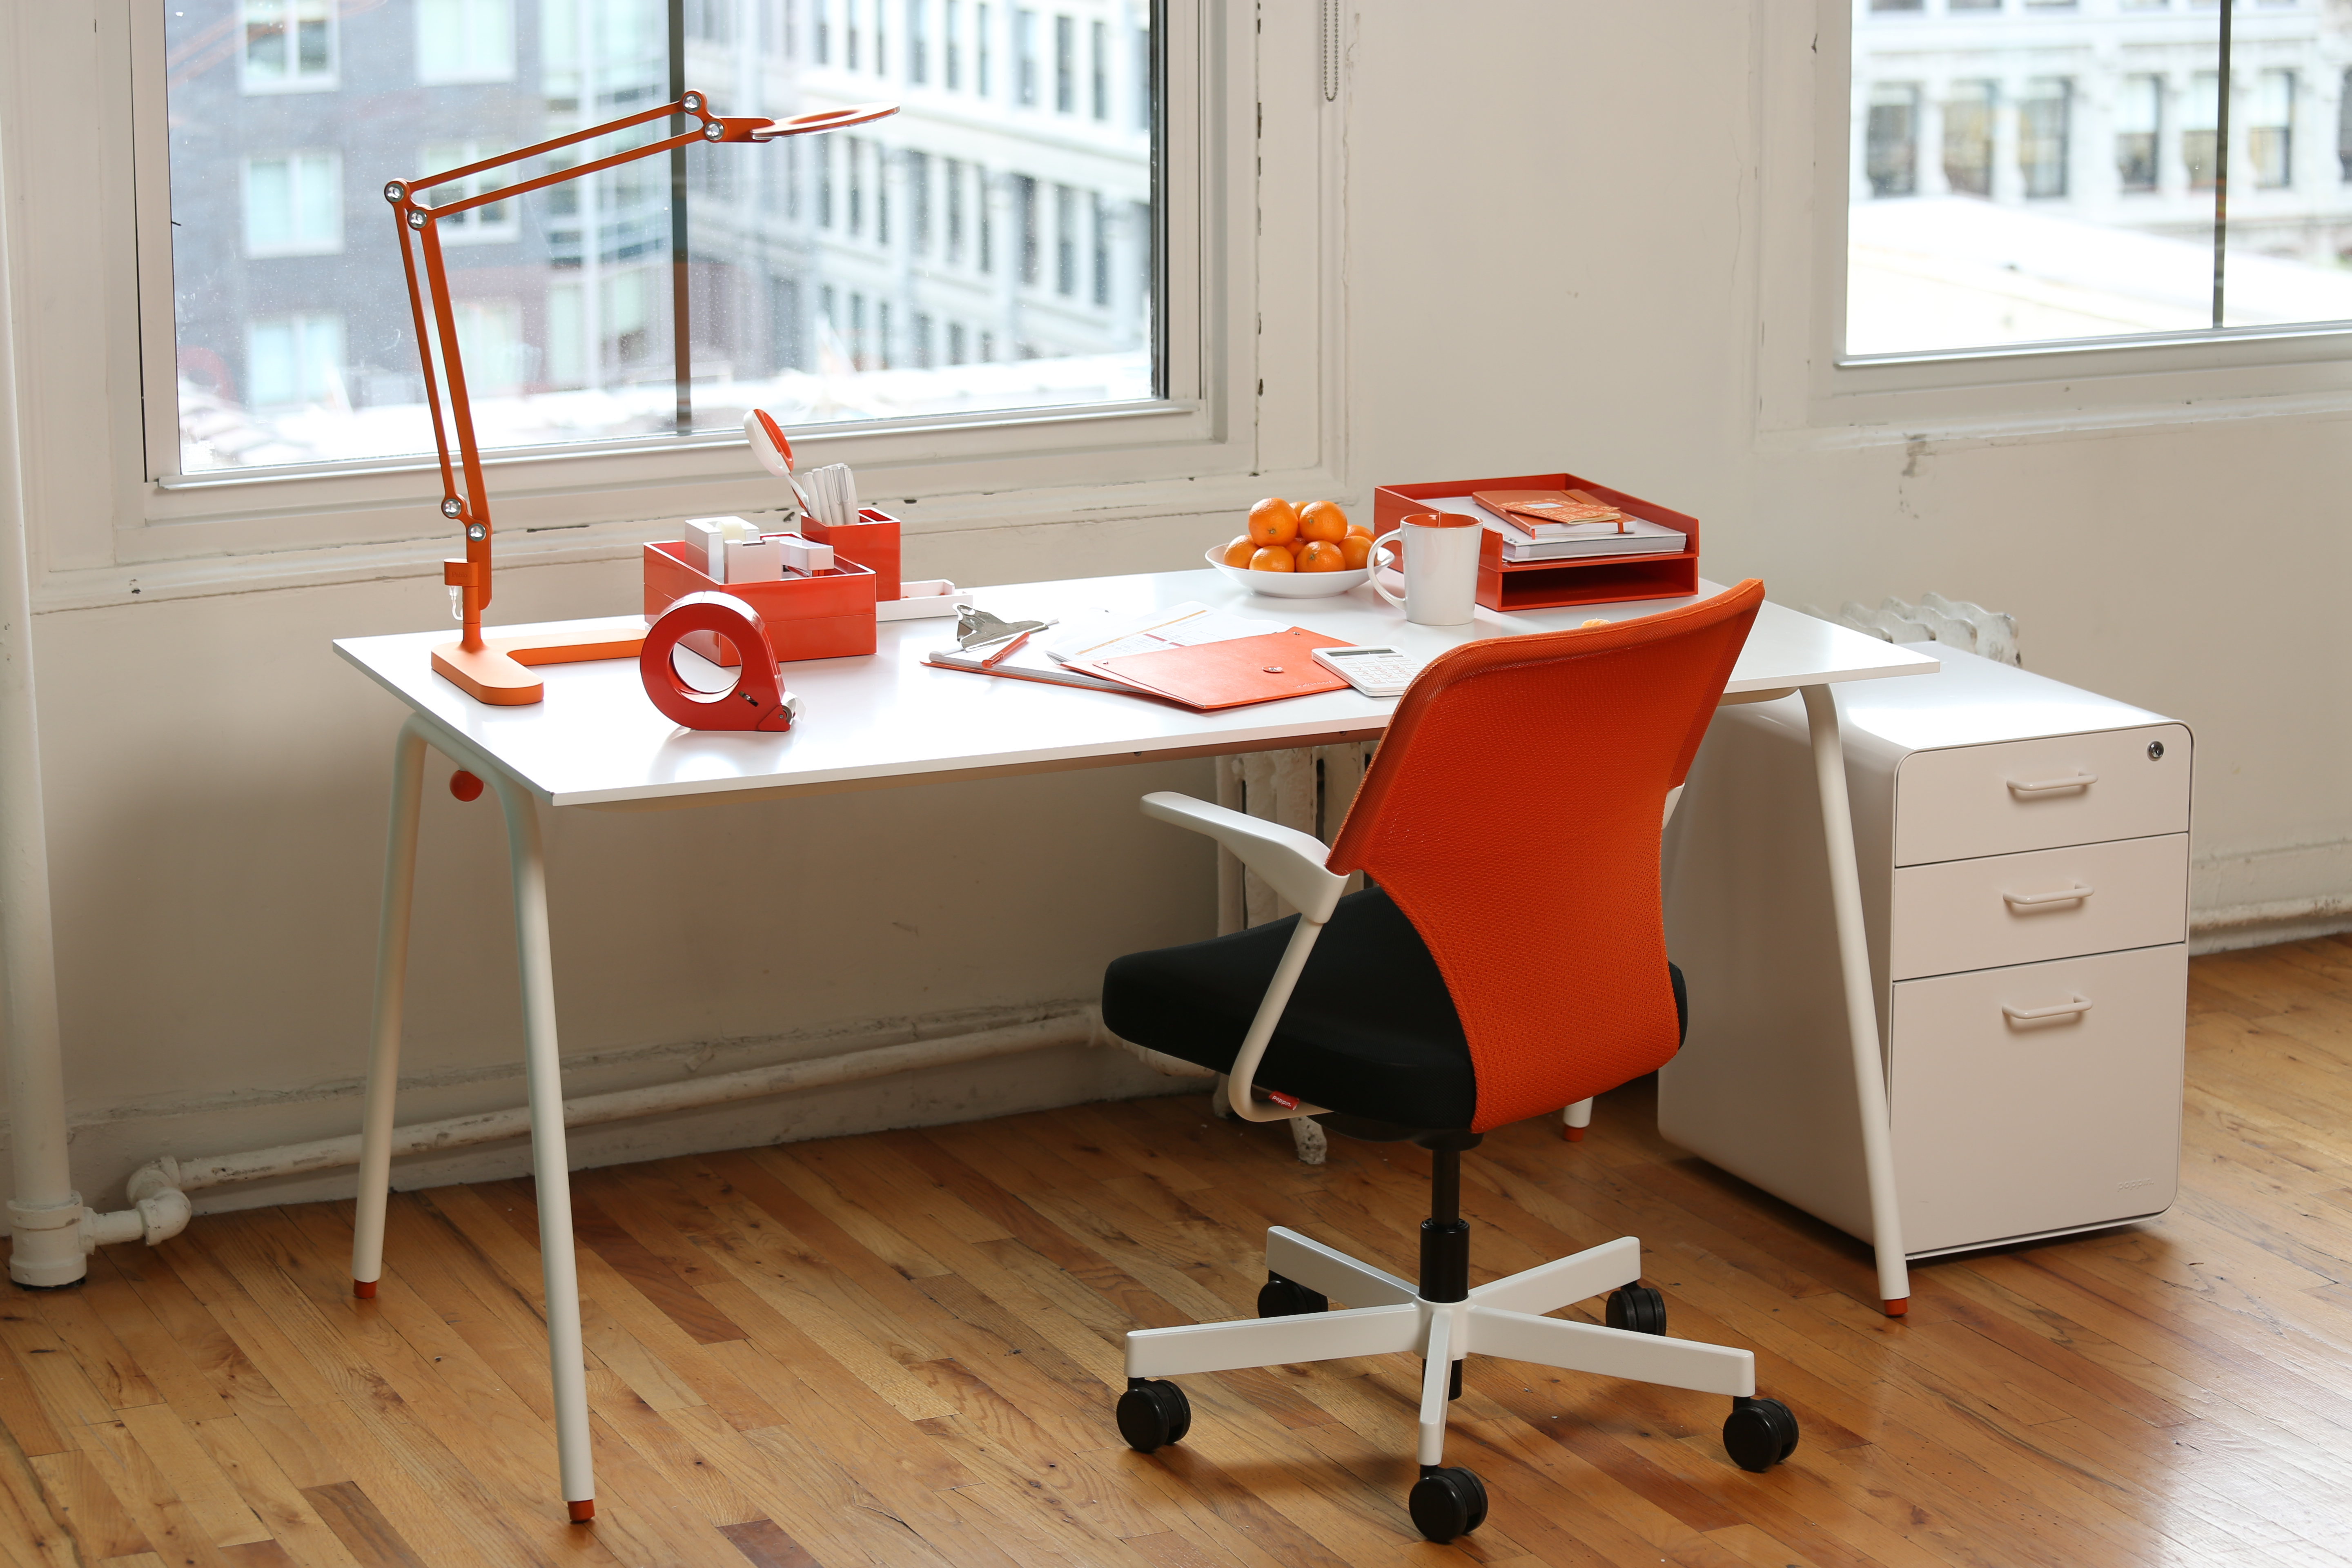 Decorating Desk E Creatively And Colorfully Can Increase Productivity Stus Say Photo Courtesy